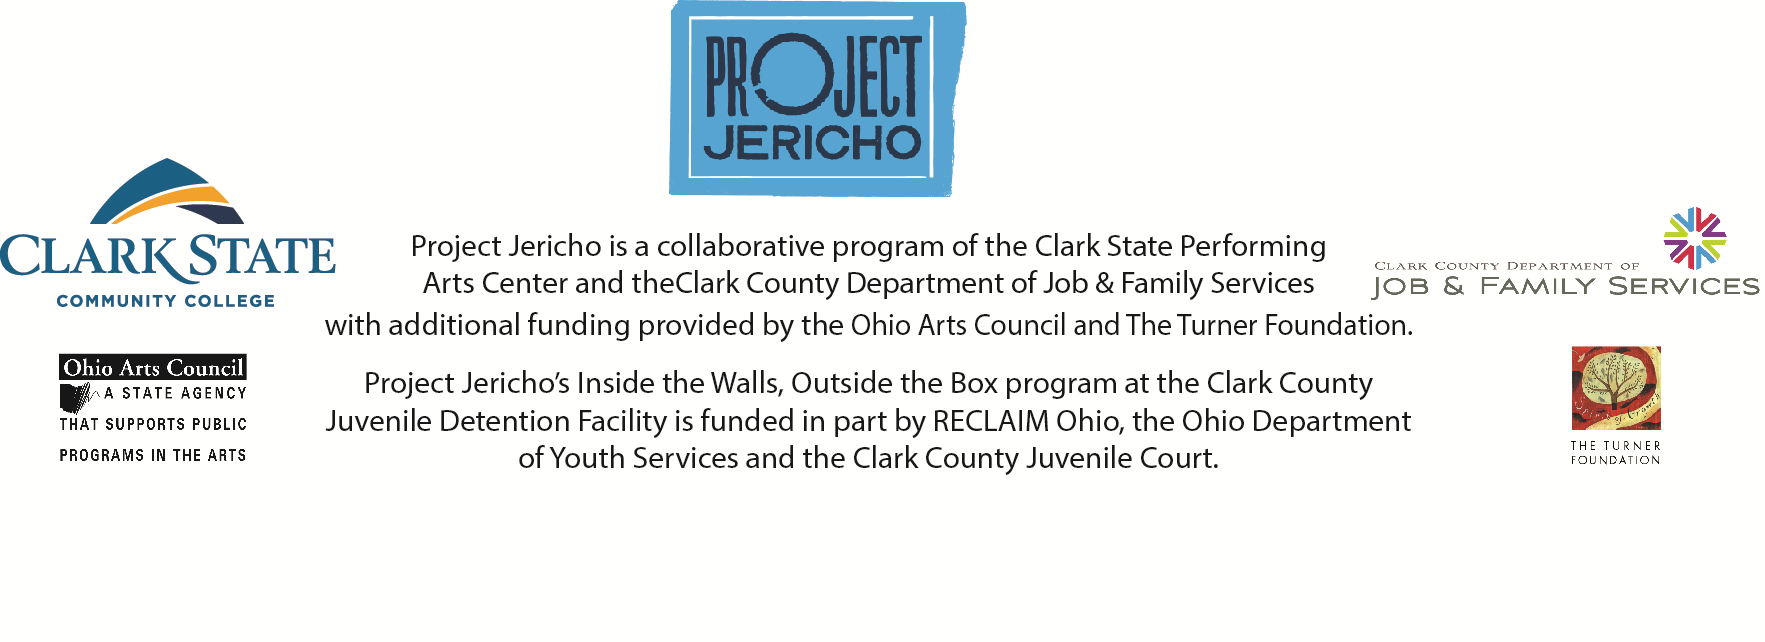 Project Jericho skinny blurb